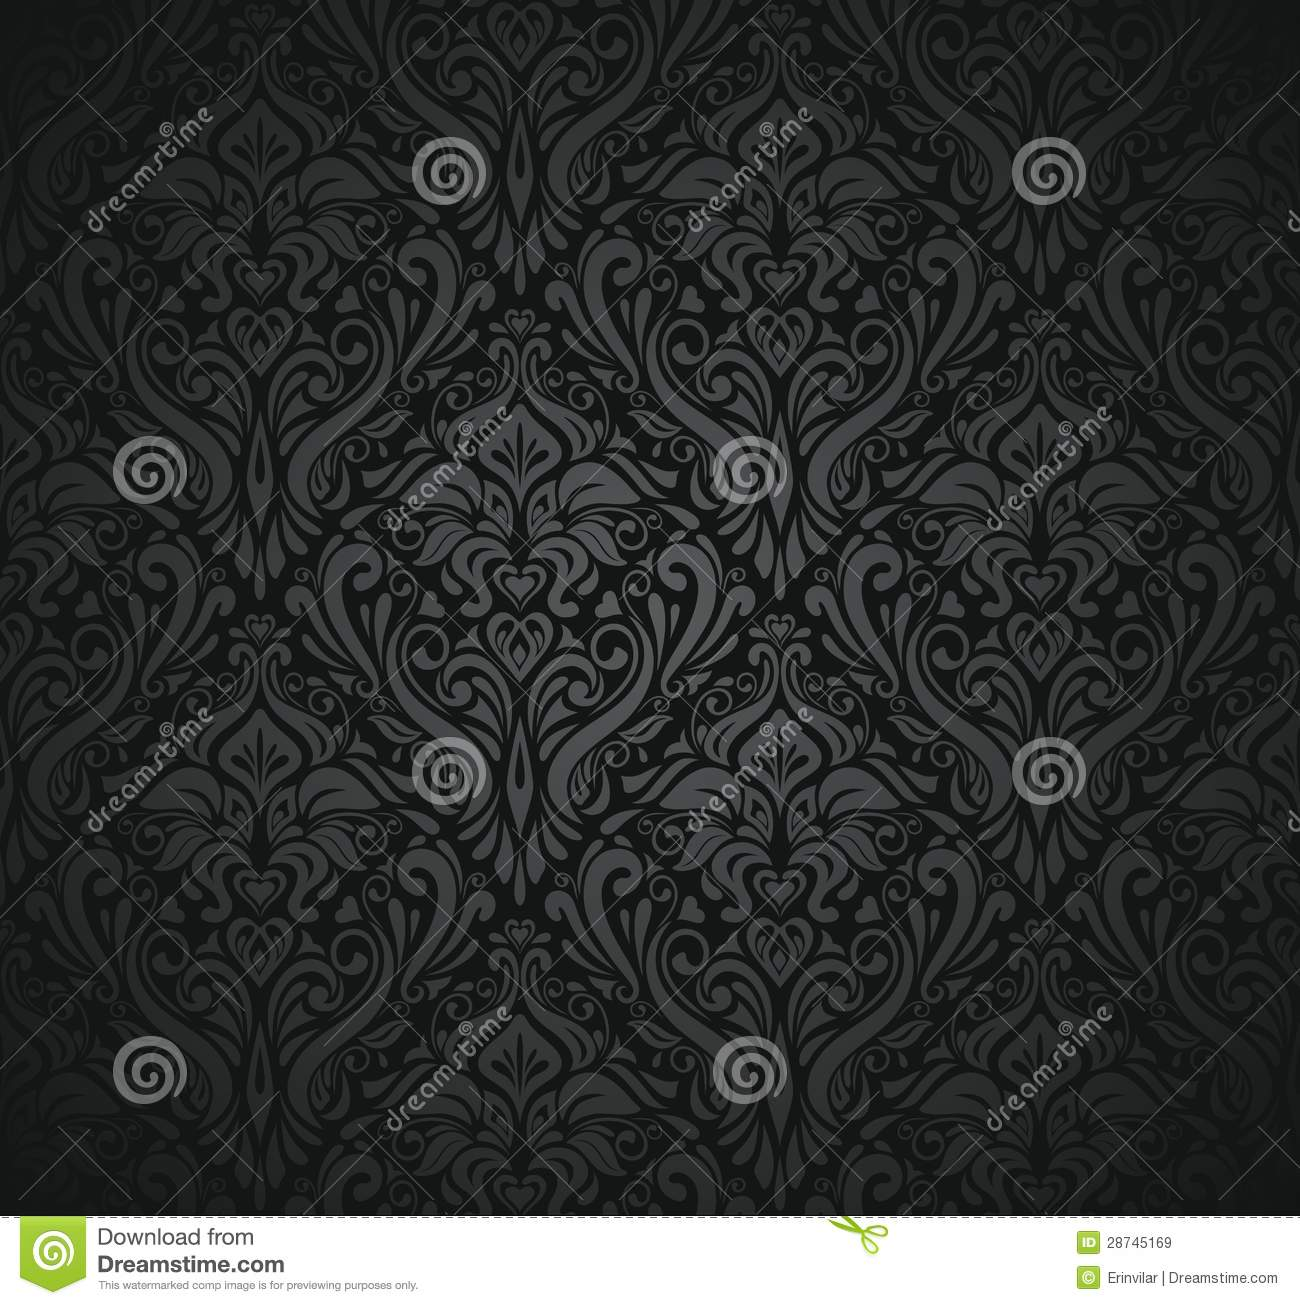 Black vintage wallpaper stock vector illustration of for Papel de pared decorativo